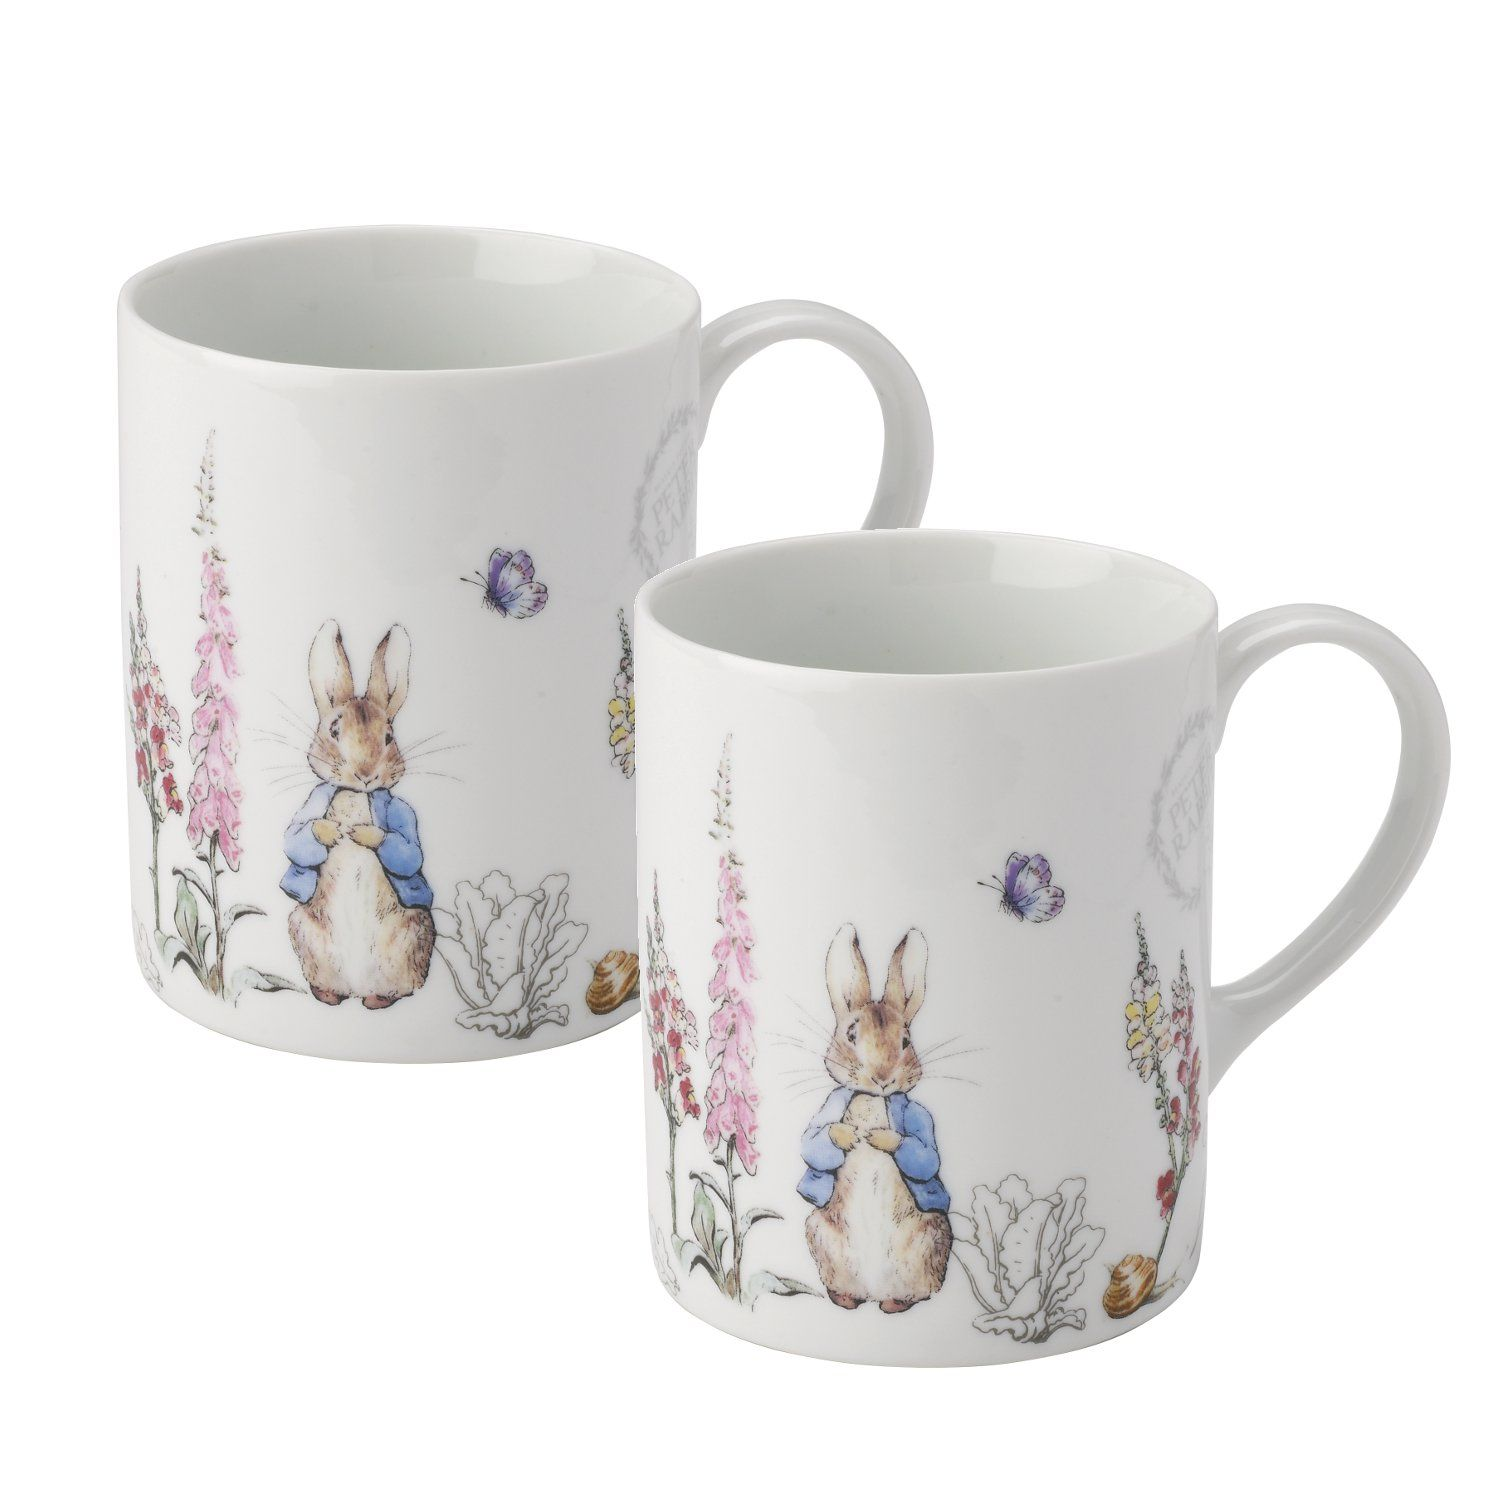 Peter Rabbit Peter Rabbit Classic Mug (Set of 2)